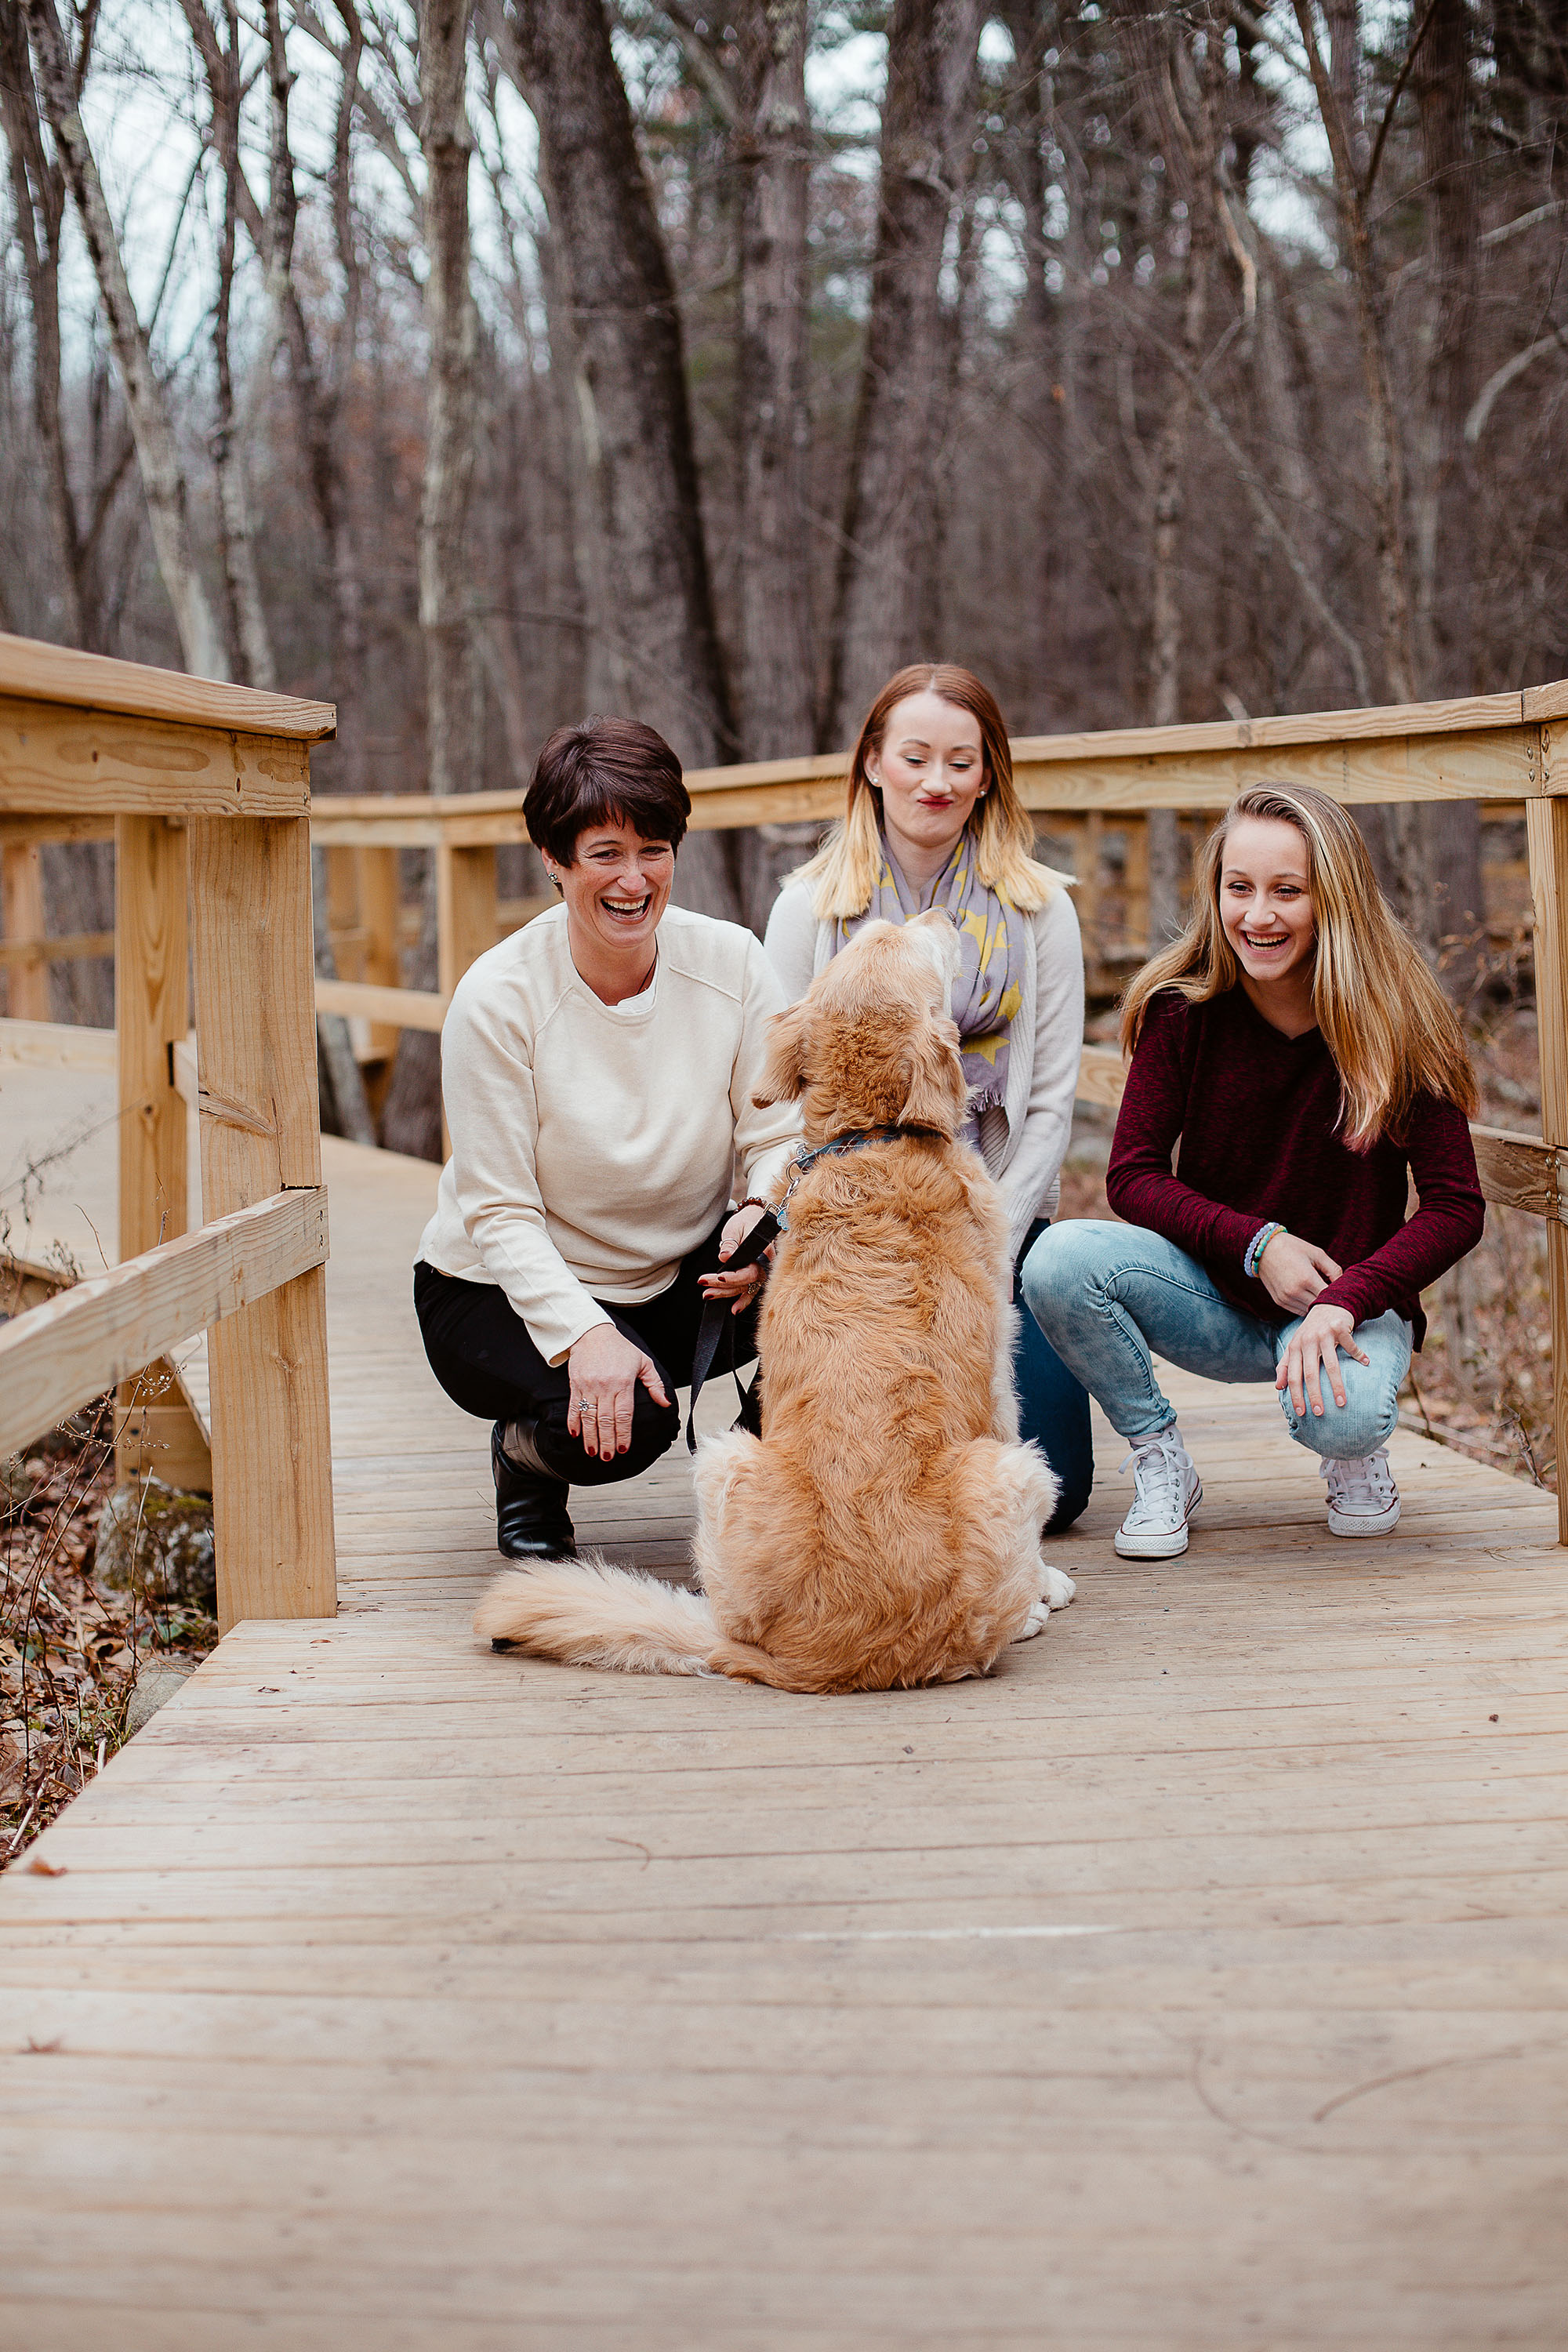 Joy Uyeno Greater Boston family photography Acton mother daughter session candid photo with dog